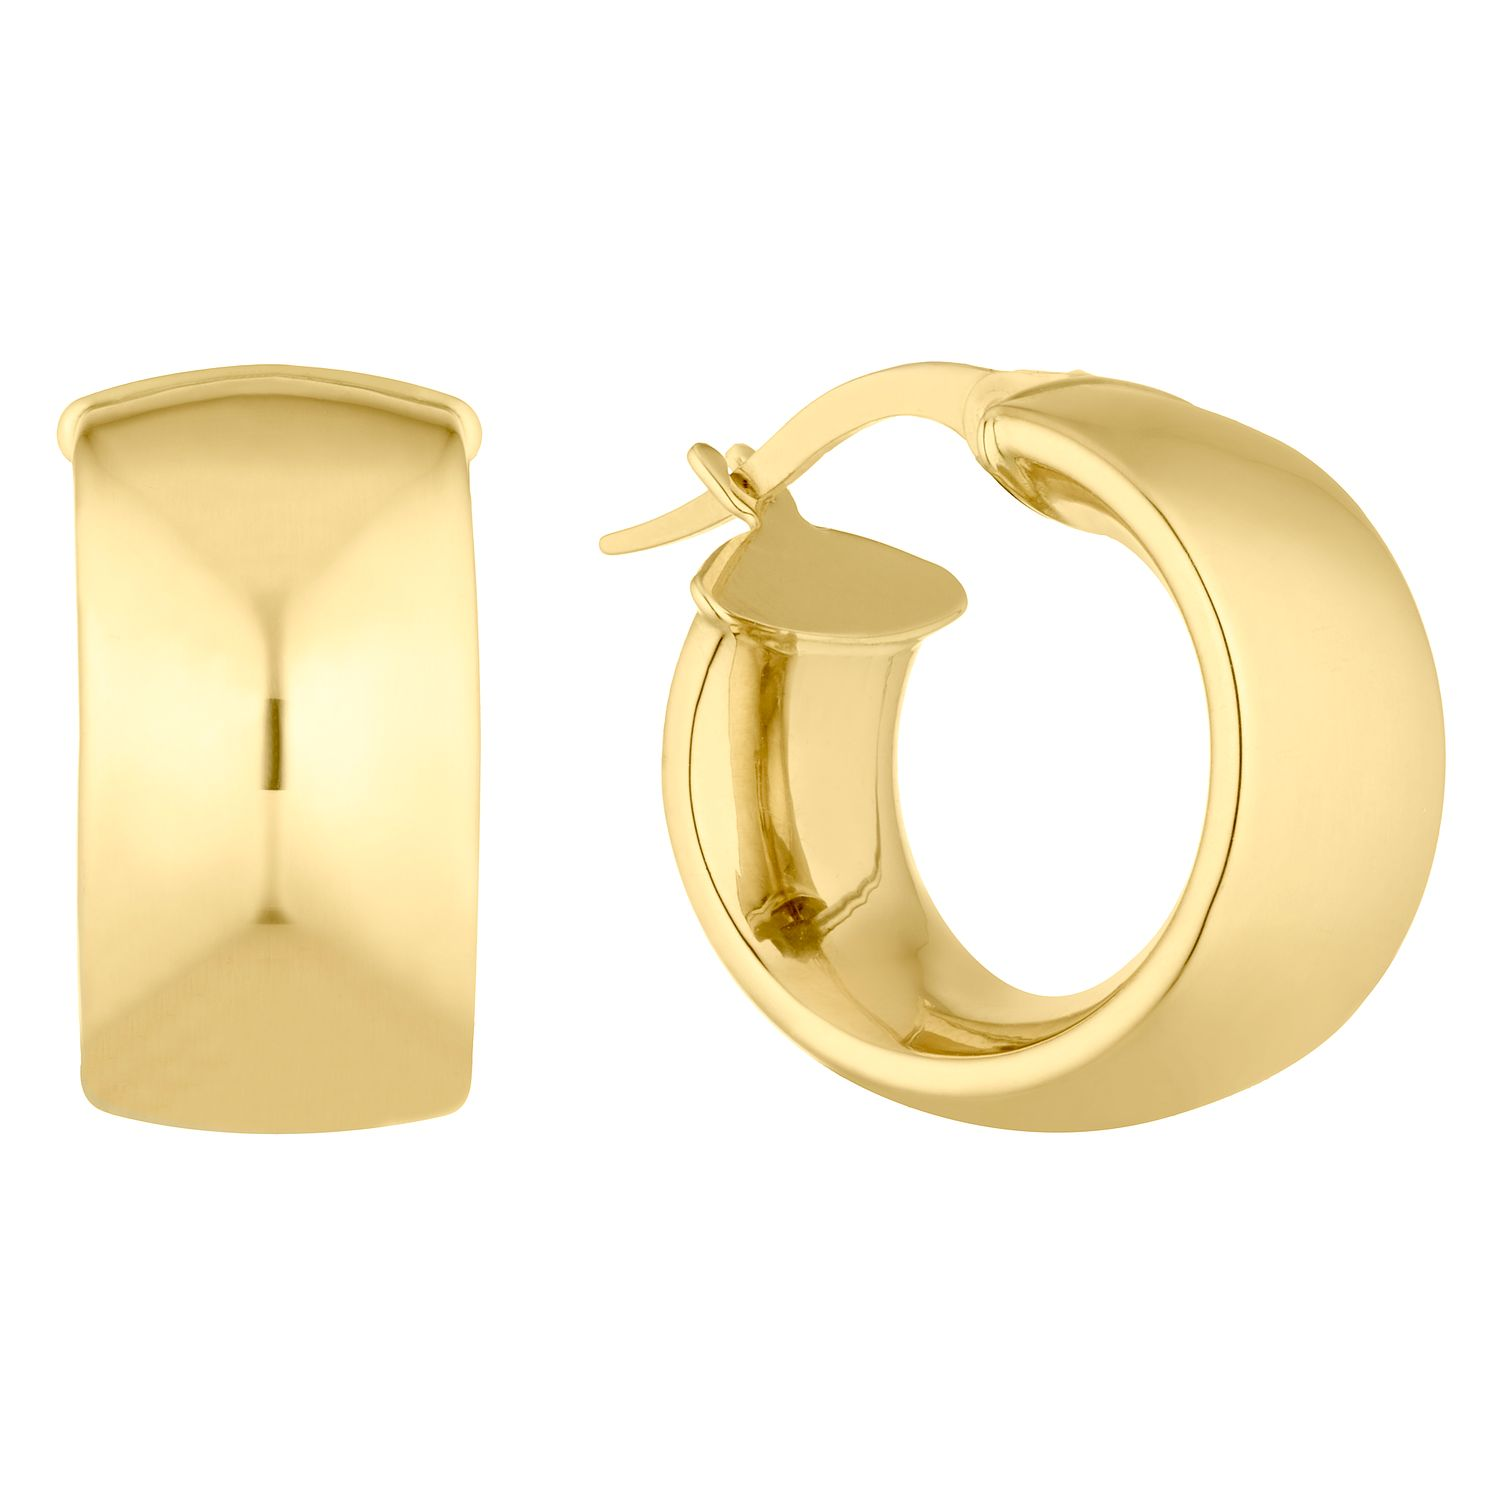 9ct Yellow Gold Chunky Hoop Earrings - Product number 4897307